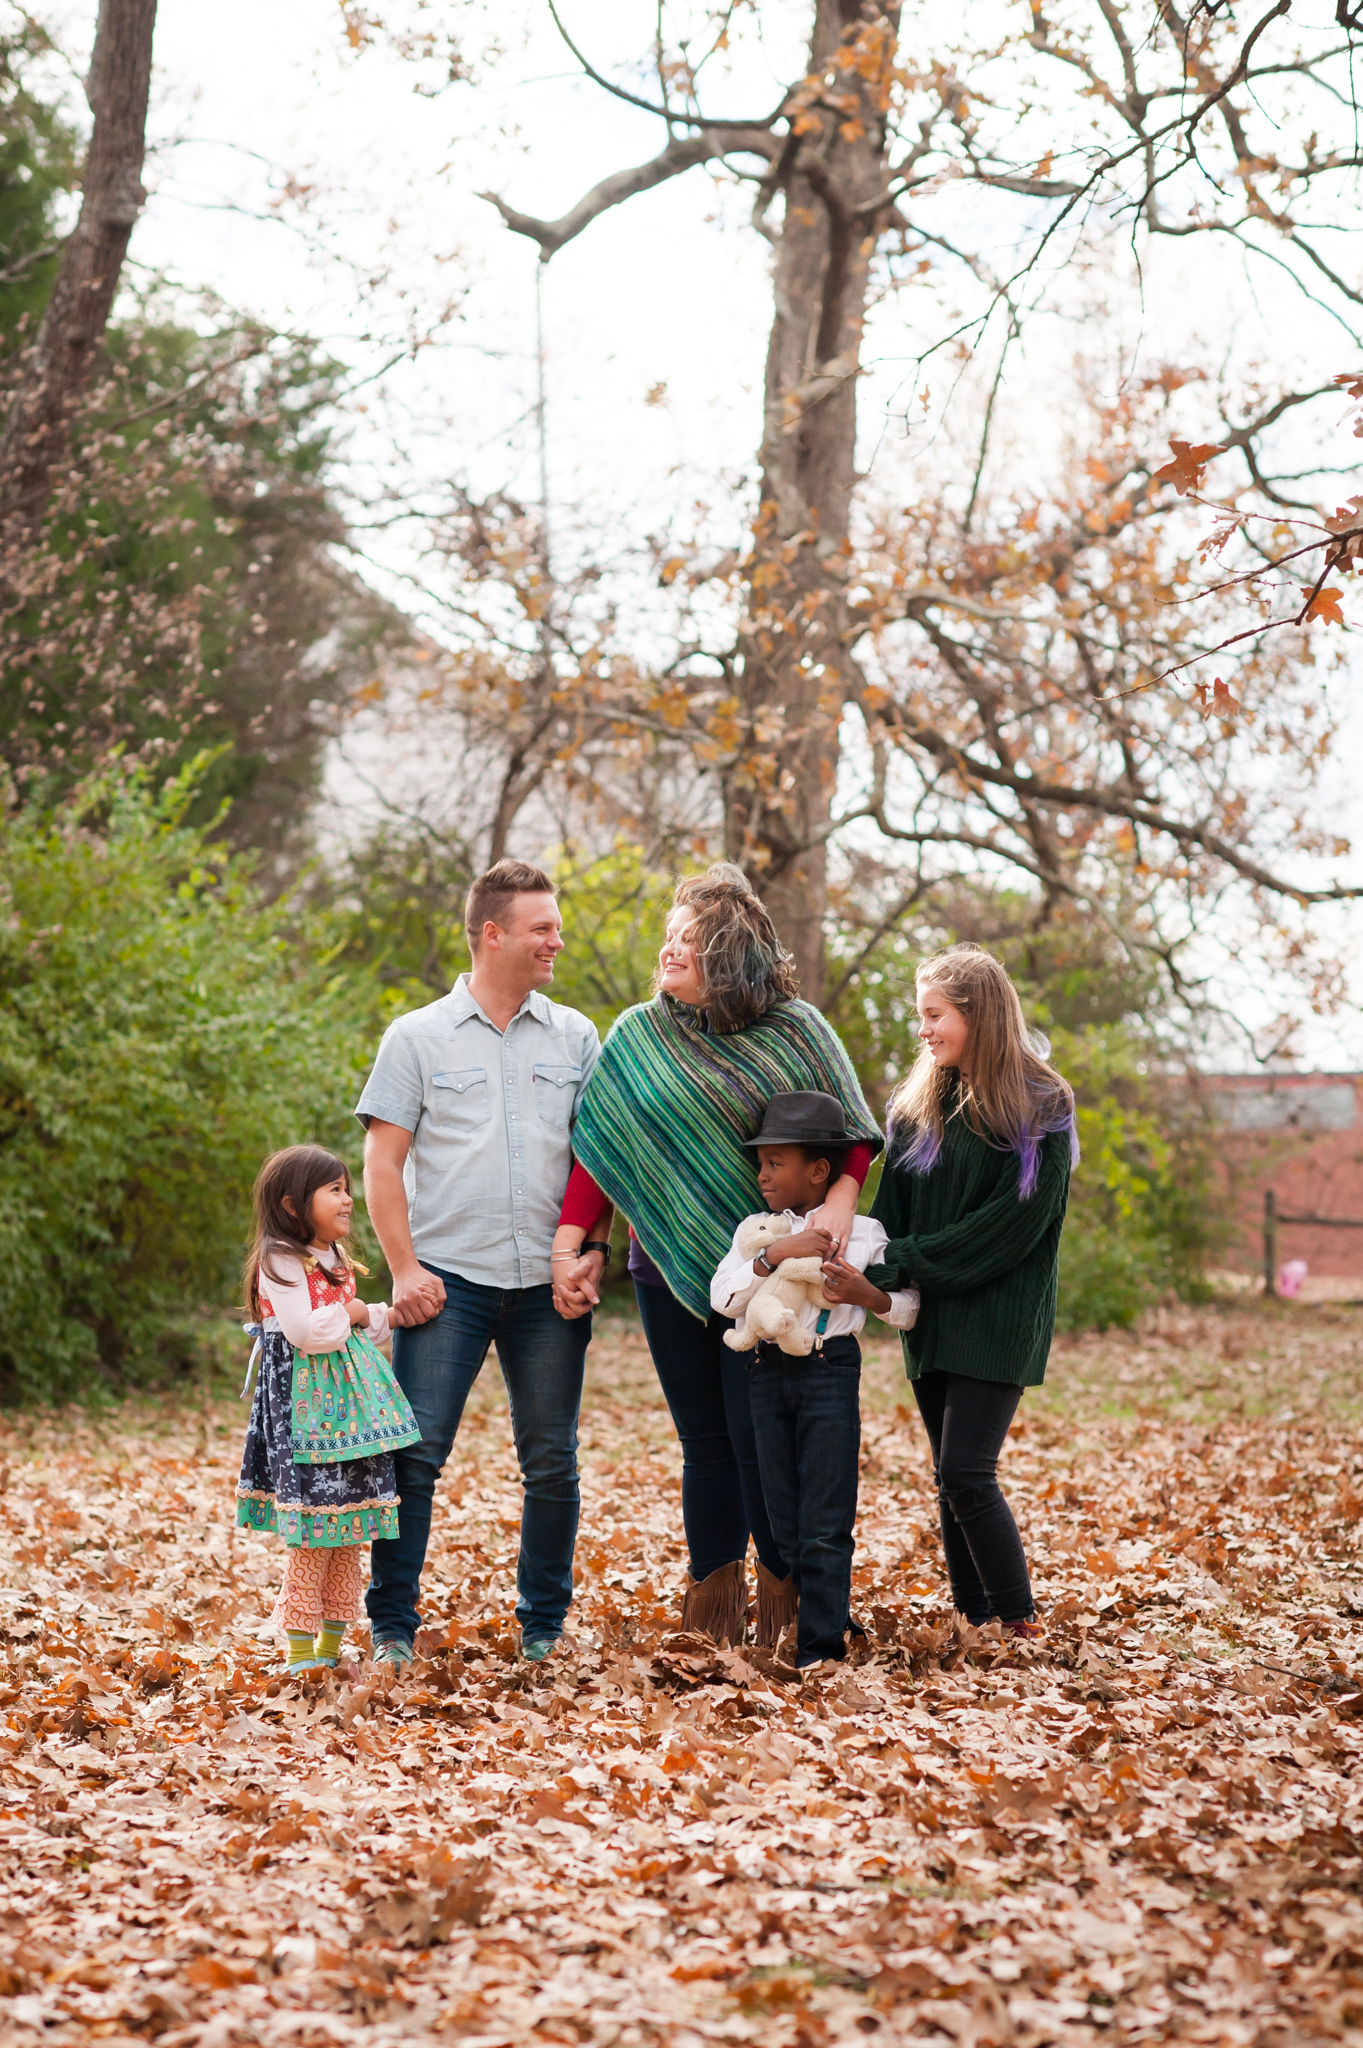 Shane Key and his wife and kids stand in fall leaves.